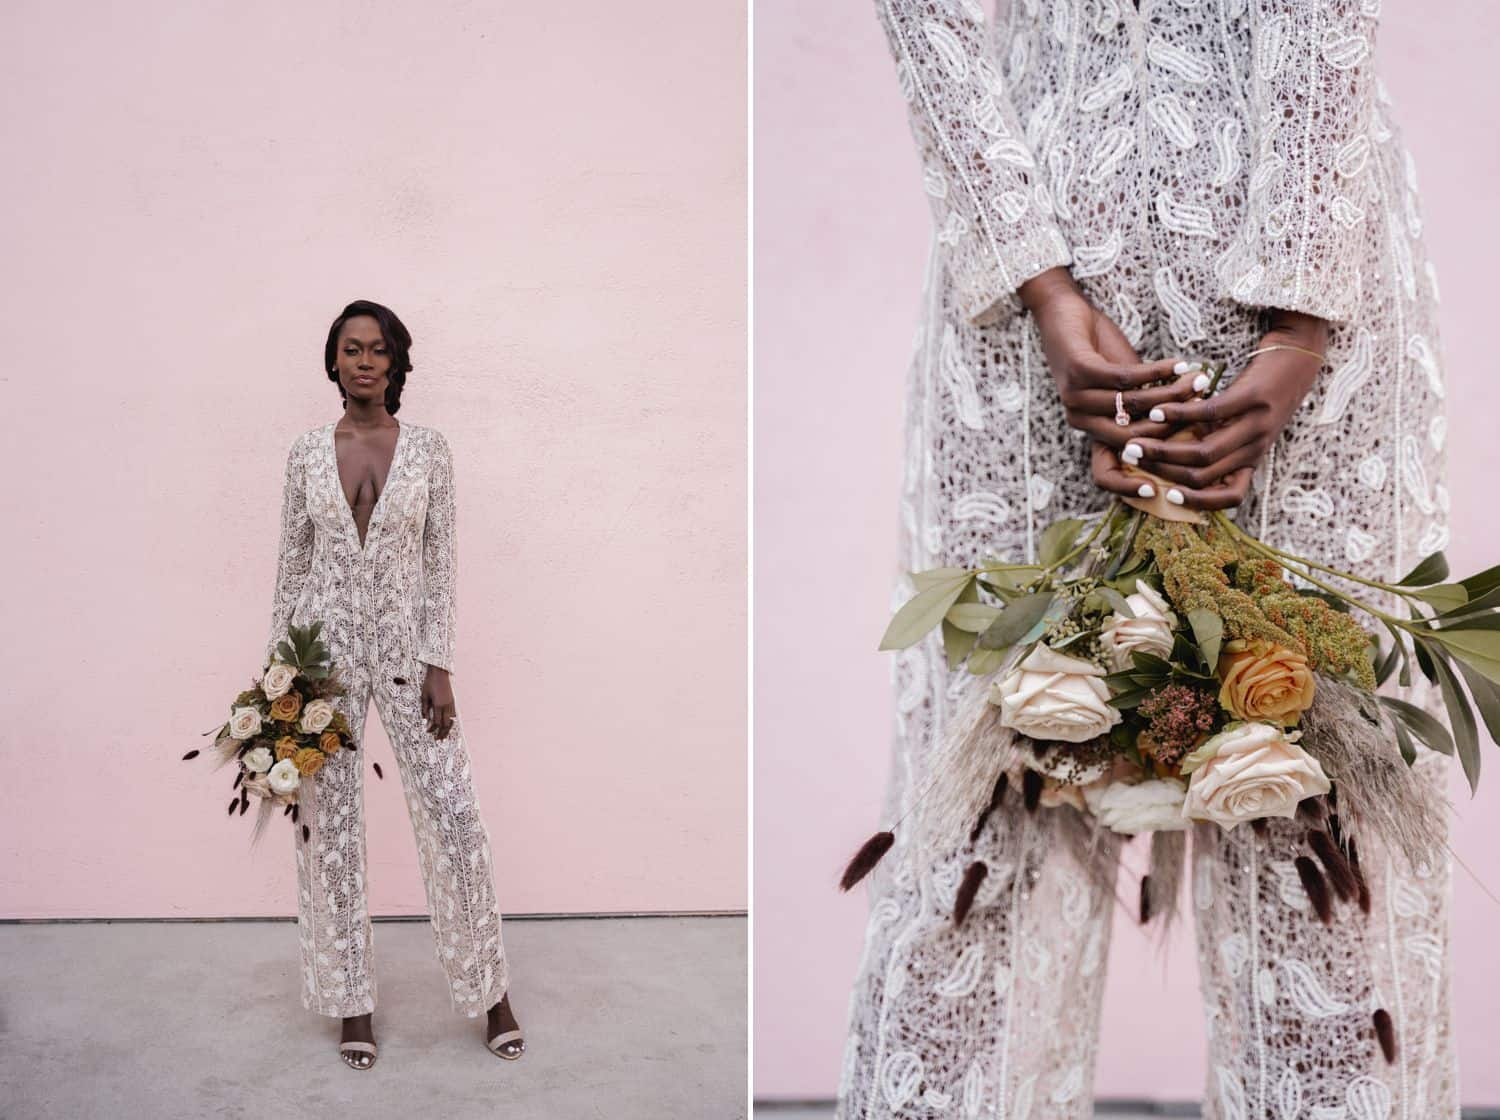 In this diptych, a Black bride in a lace jumpsuit holds her large wildflower bouquet against a pink wall.